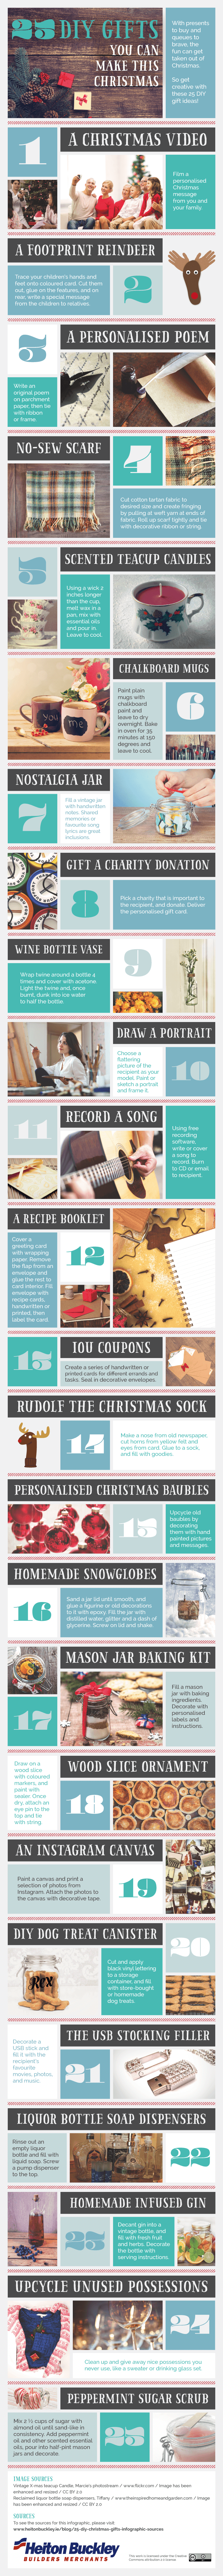 25 Christmas Gifts You Can Make in 10 Minutes